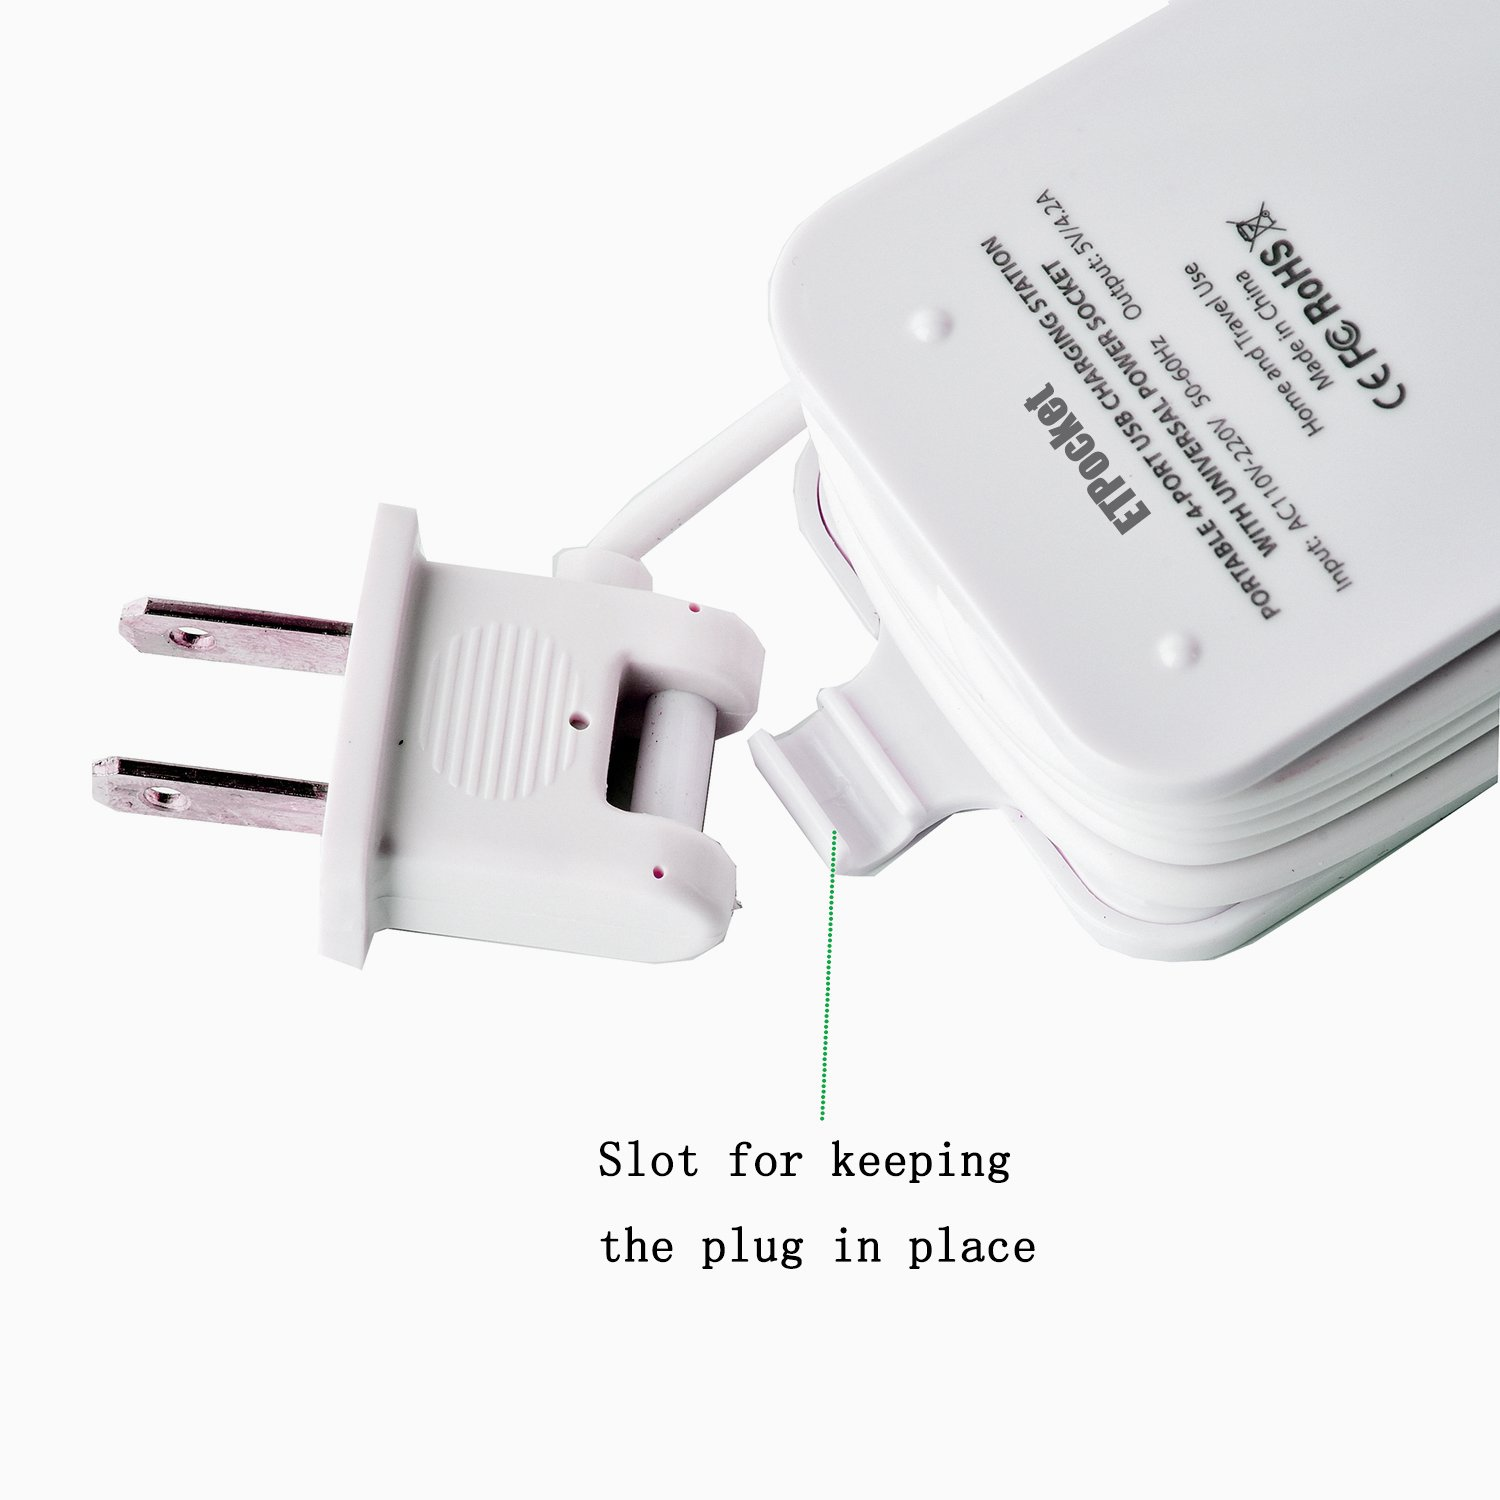 USB Power Strip Portable Travel Charger Outlets 2.1AMP 1AMP 21W 5Foot Power Supply Cord With Universal Plug Input From 100v-240v Power Sockets USB Charger Station 4 Port 5v 1A/2.1A USB Charger (White) by ETPocket (Image #5)